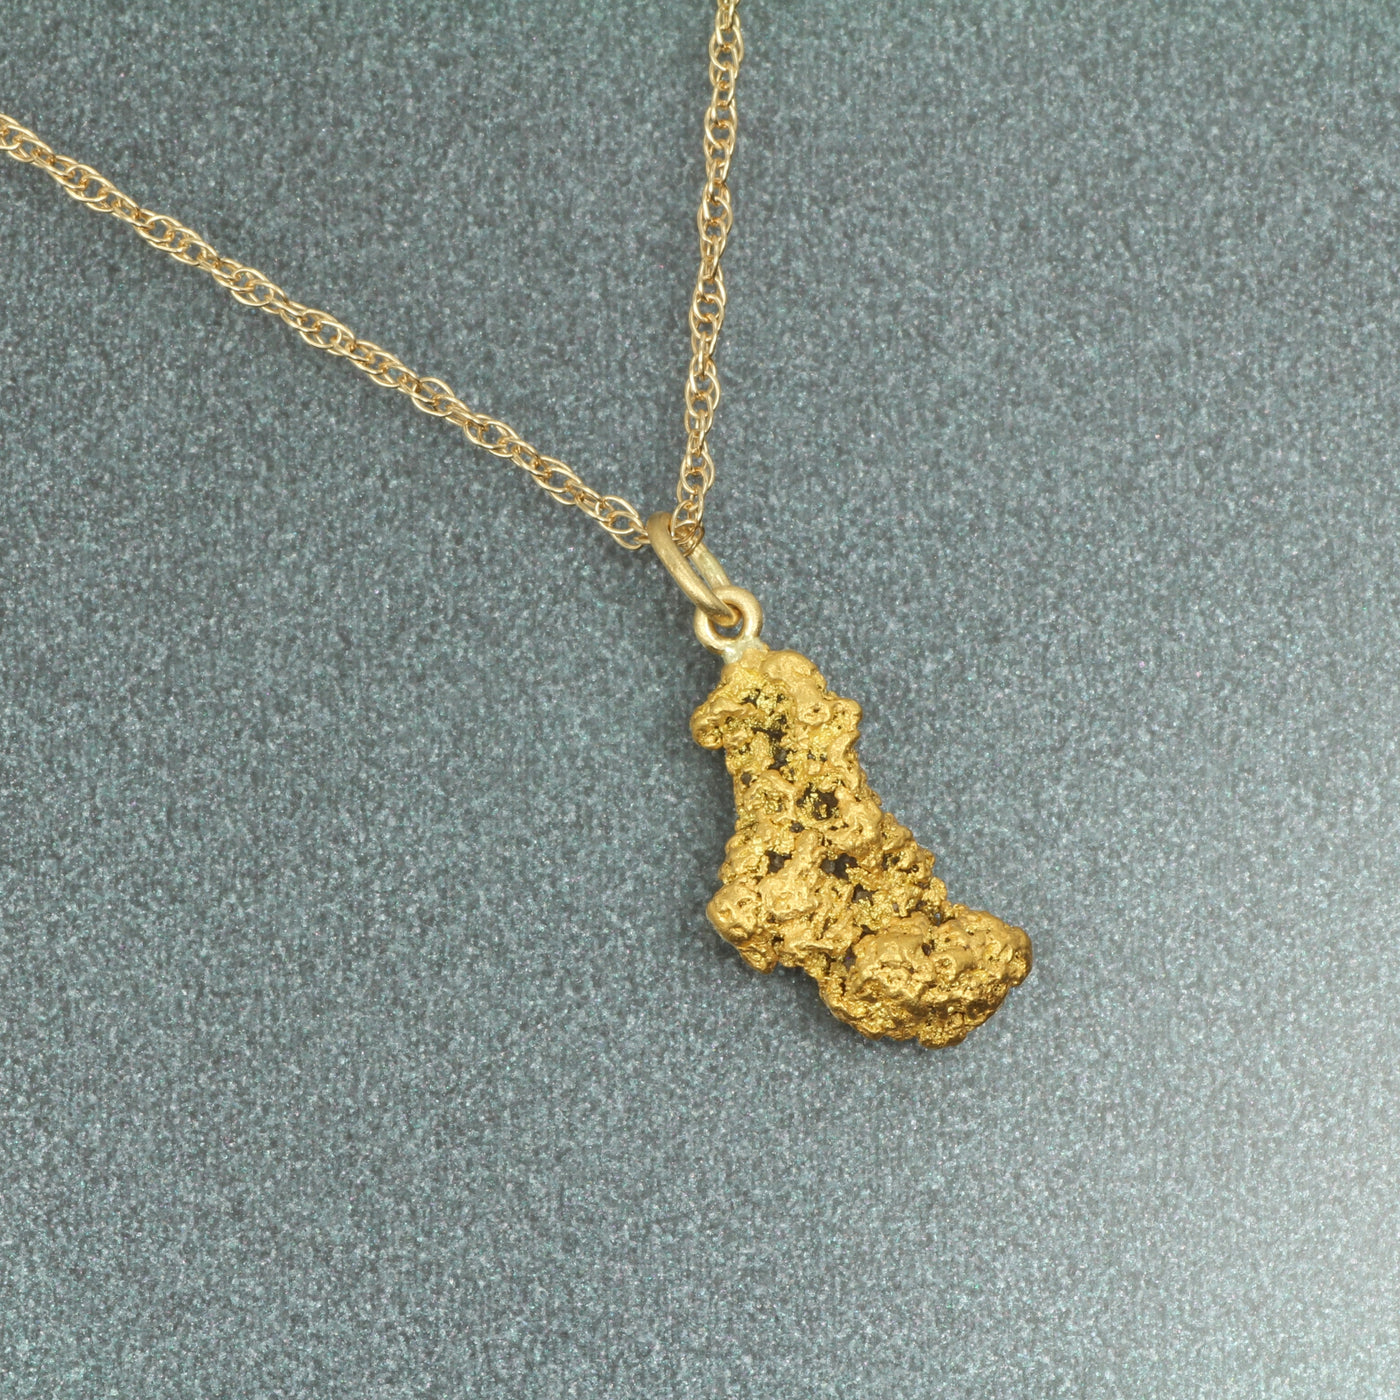 NATURAL GOLD NUGGET